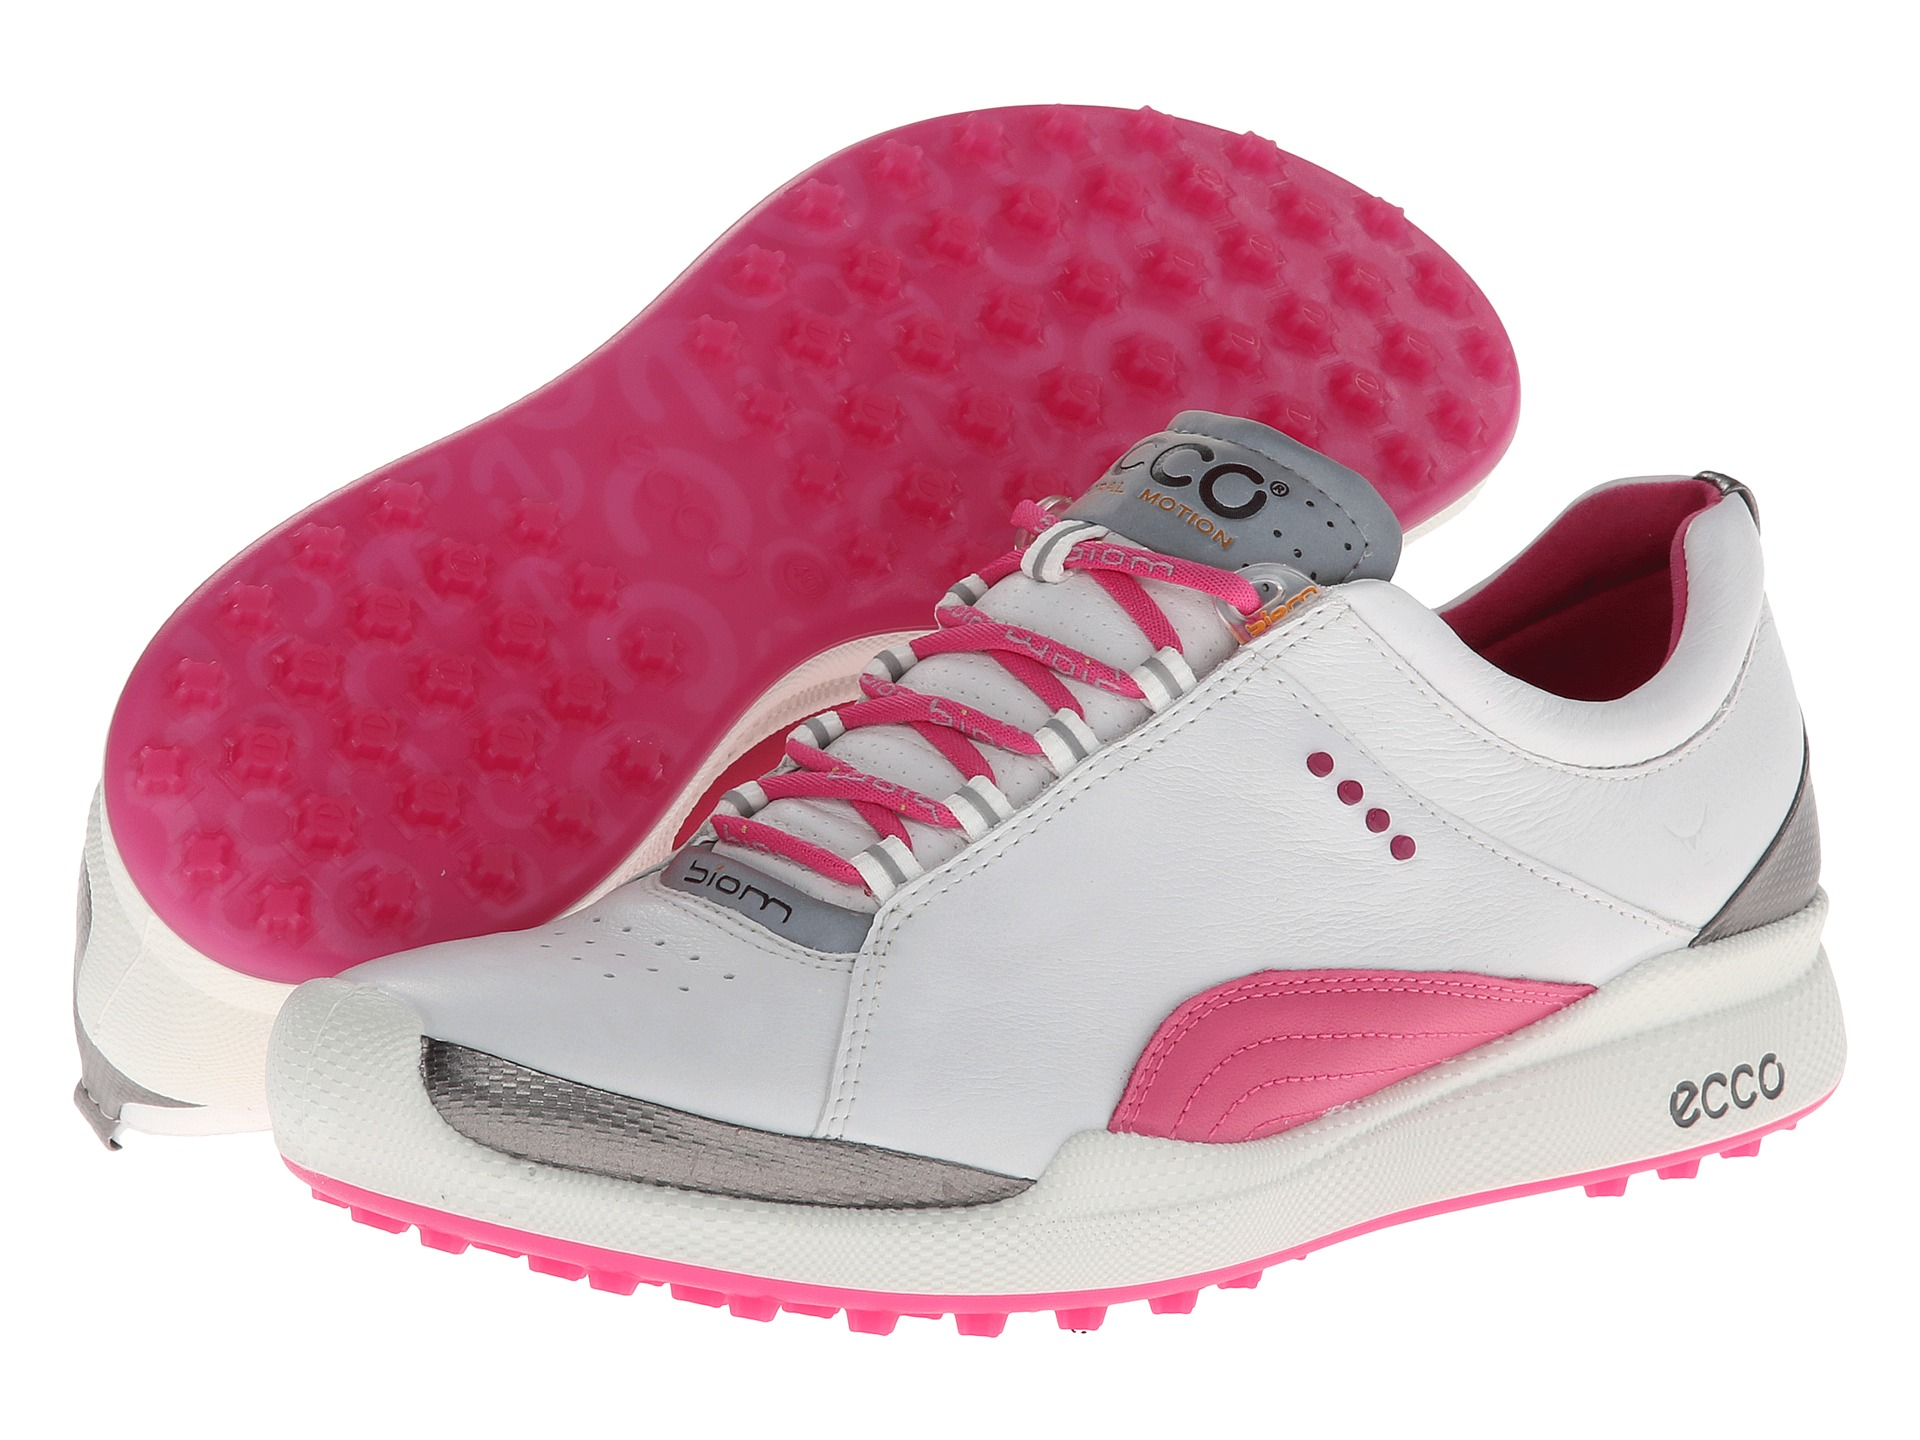 official photos 89305 40ad5 do ecco golf shoes come in wide width Orthopädisches